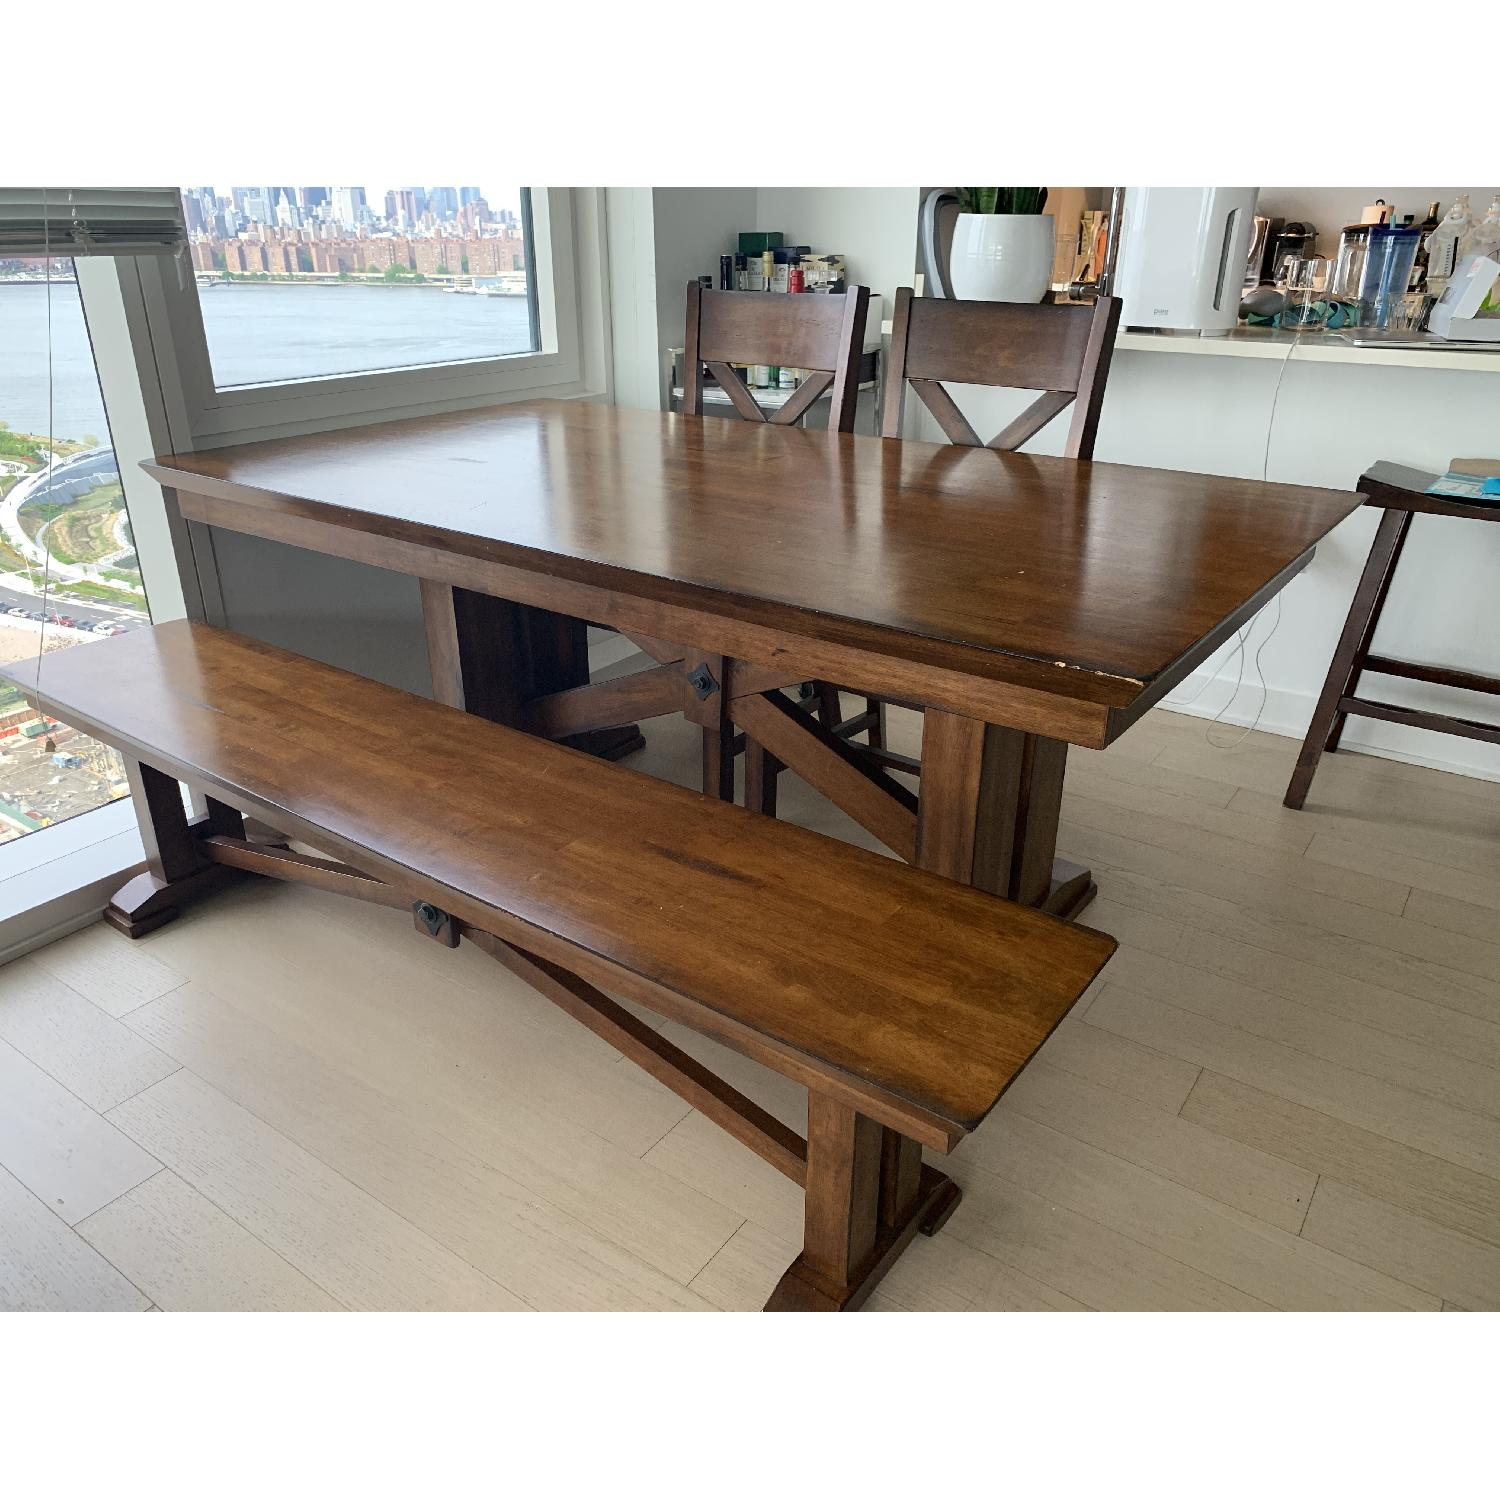 Dining Tables World Market: World Market Solid Wood Dining Table W/ 1 Bench + 2